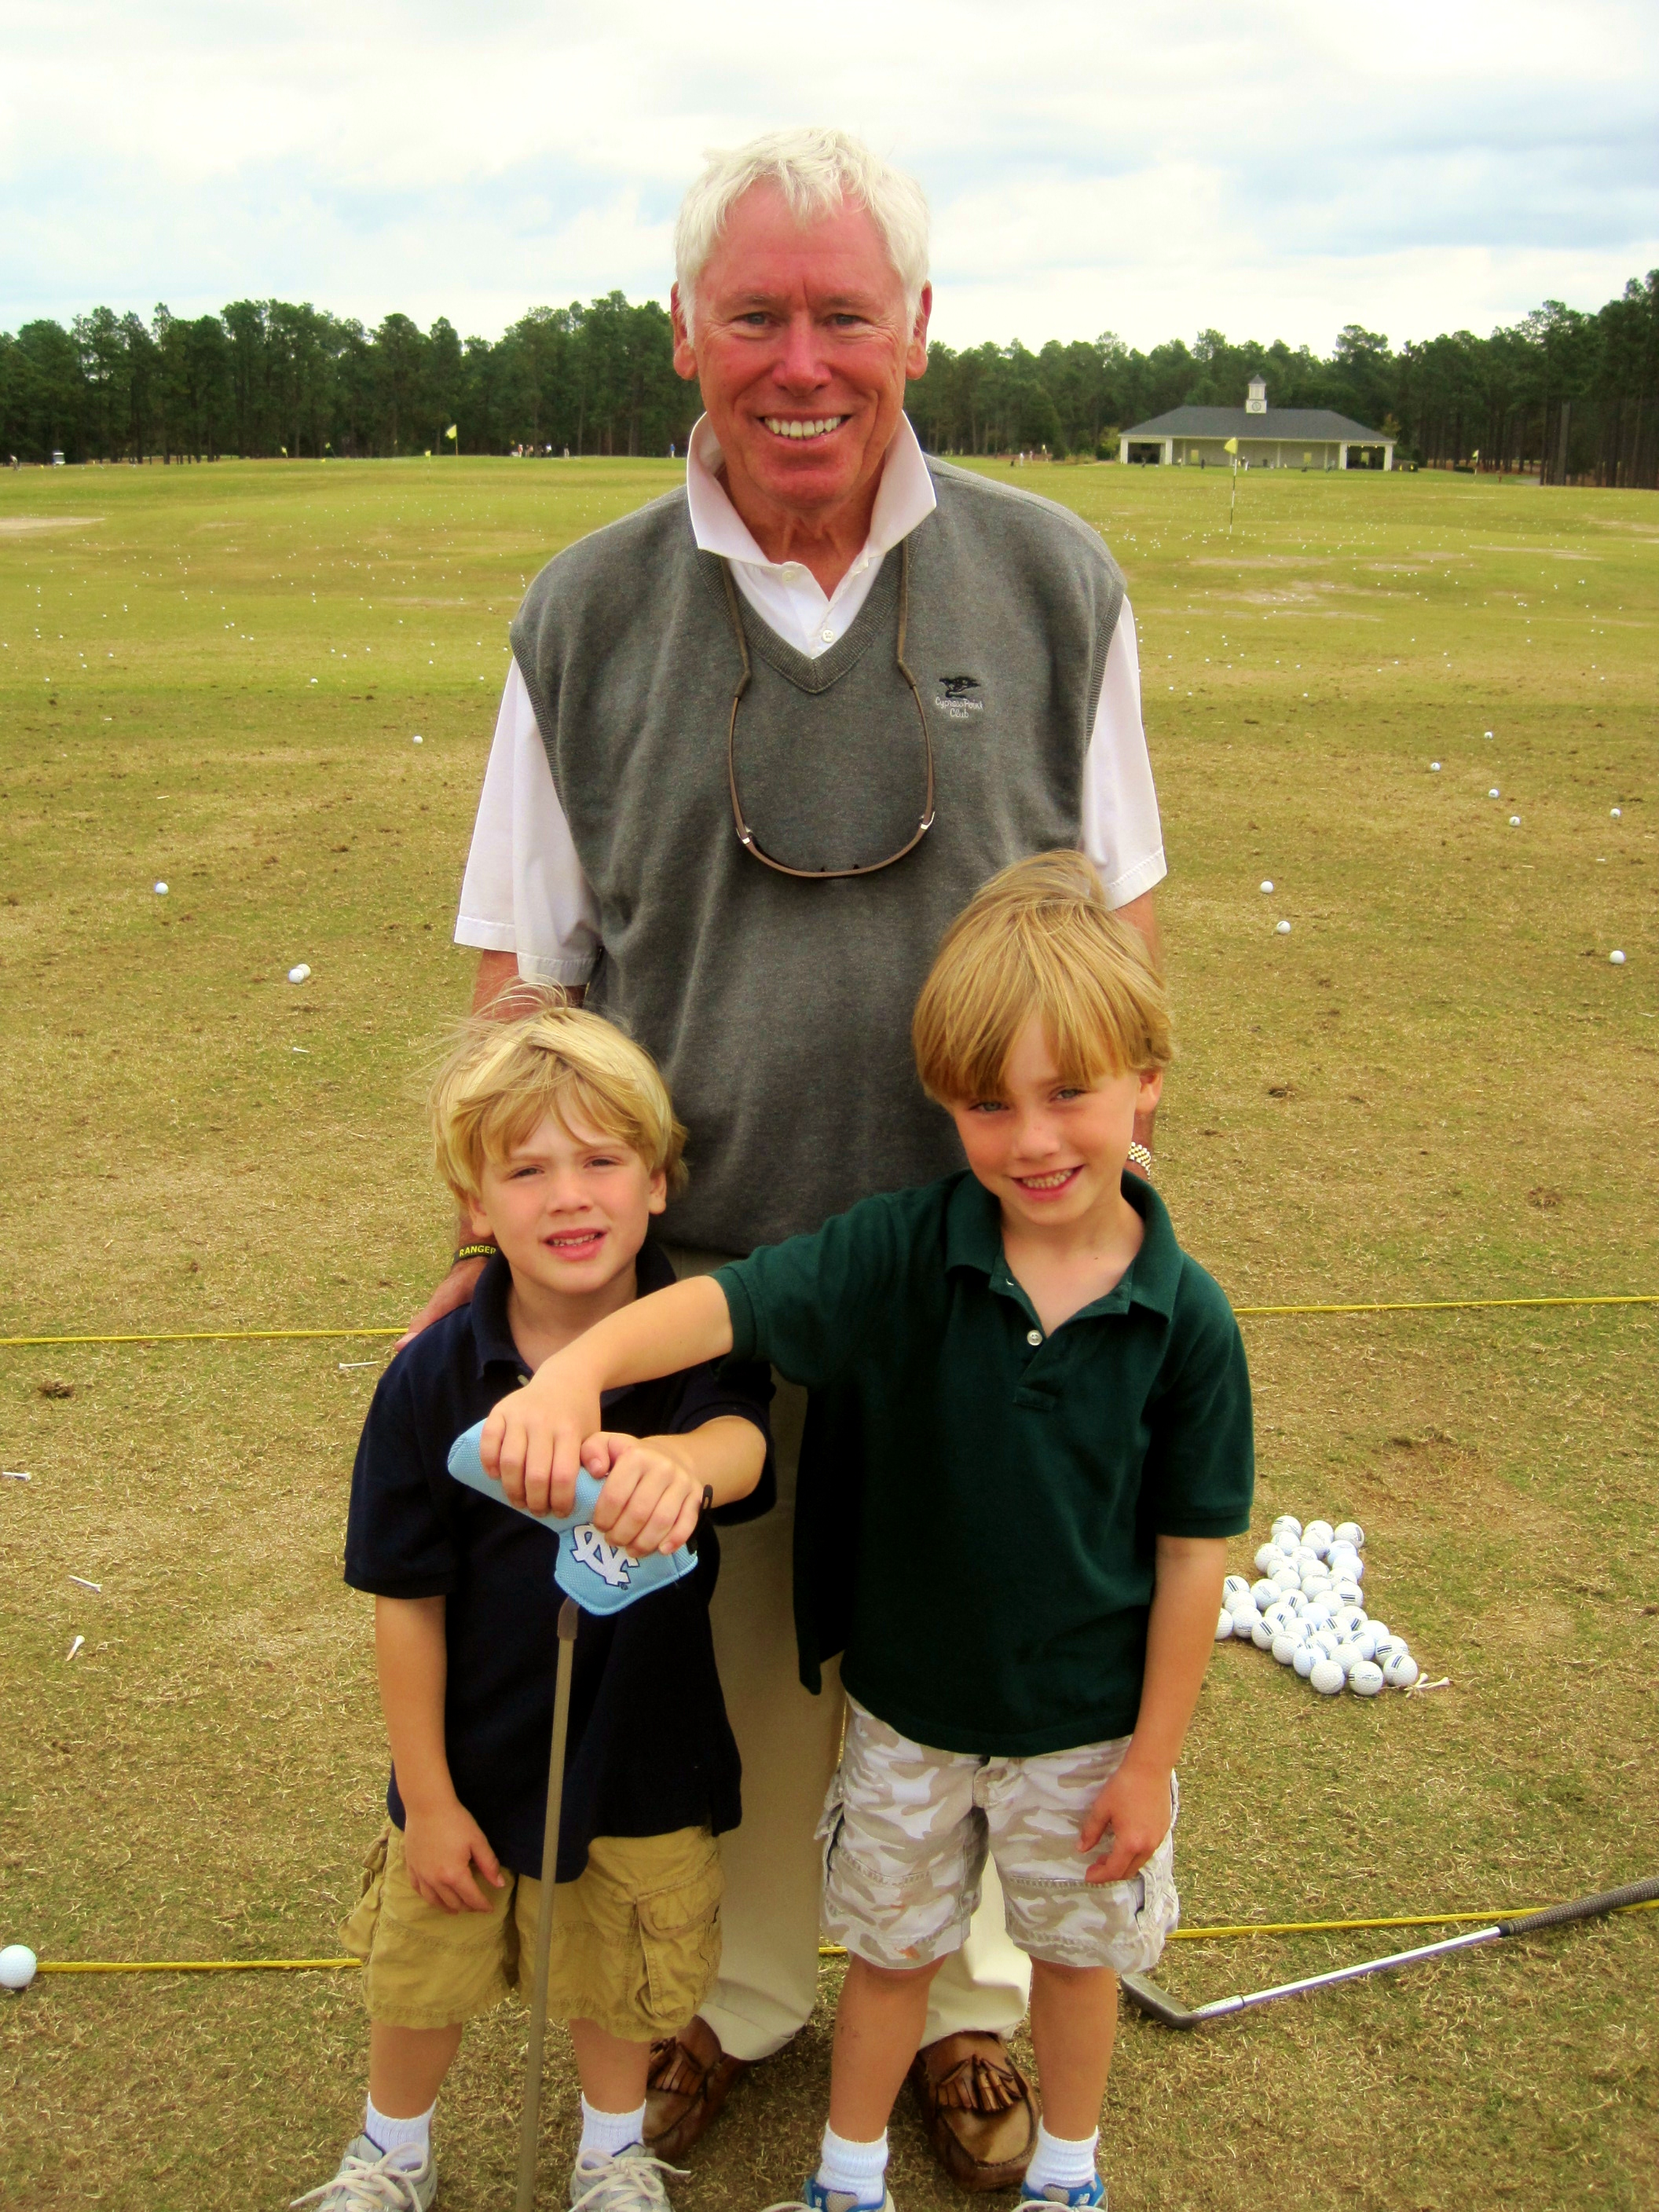 Pinehurst member Joe McAuley stands with his grandsons Porter 4, (left) and McAuley, 6, (right) on the practice range at Pinehurst Resort.